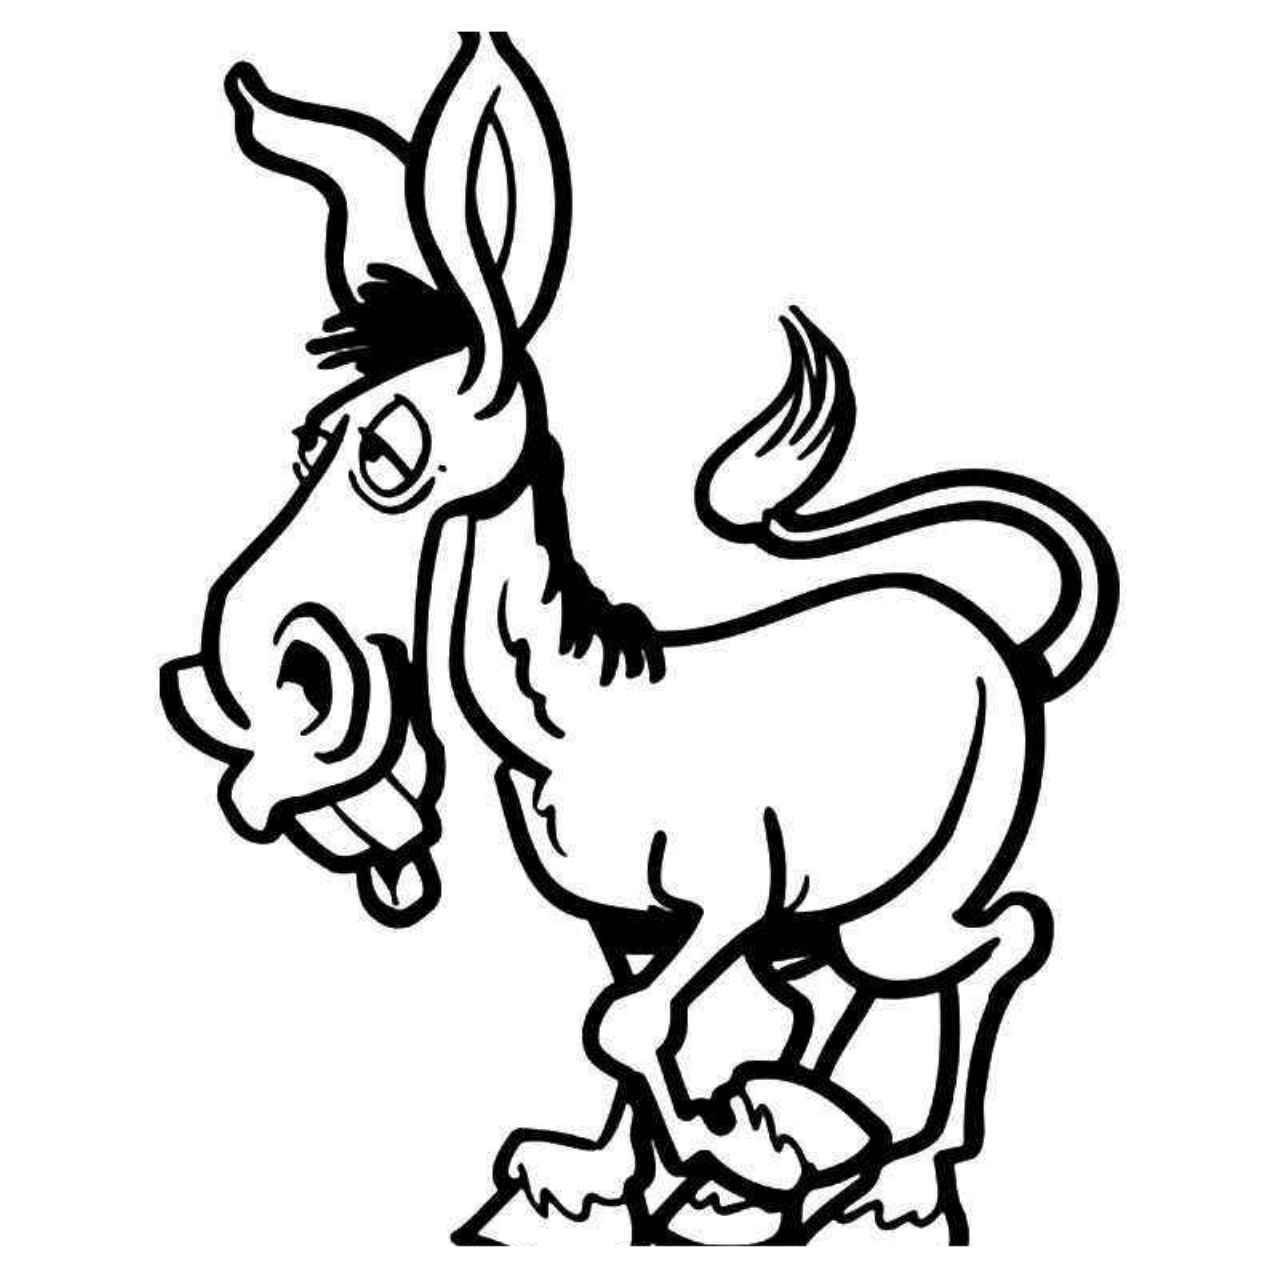 drawing of a donkey donkey cartoon drawing in 4 steps with photoshop cartoon donkey of drawing a